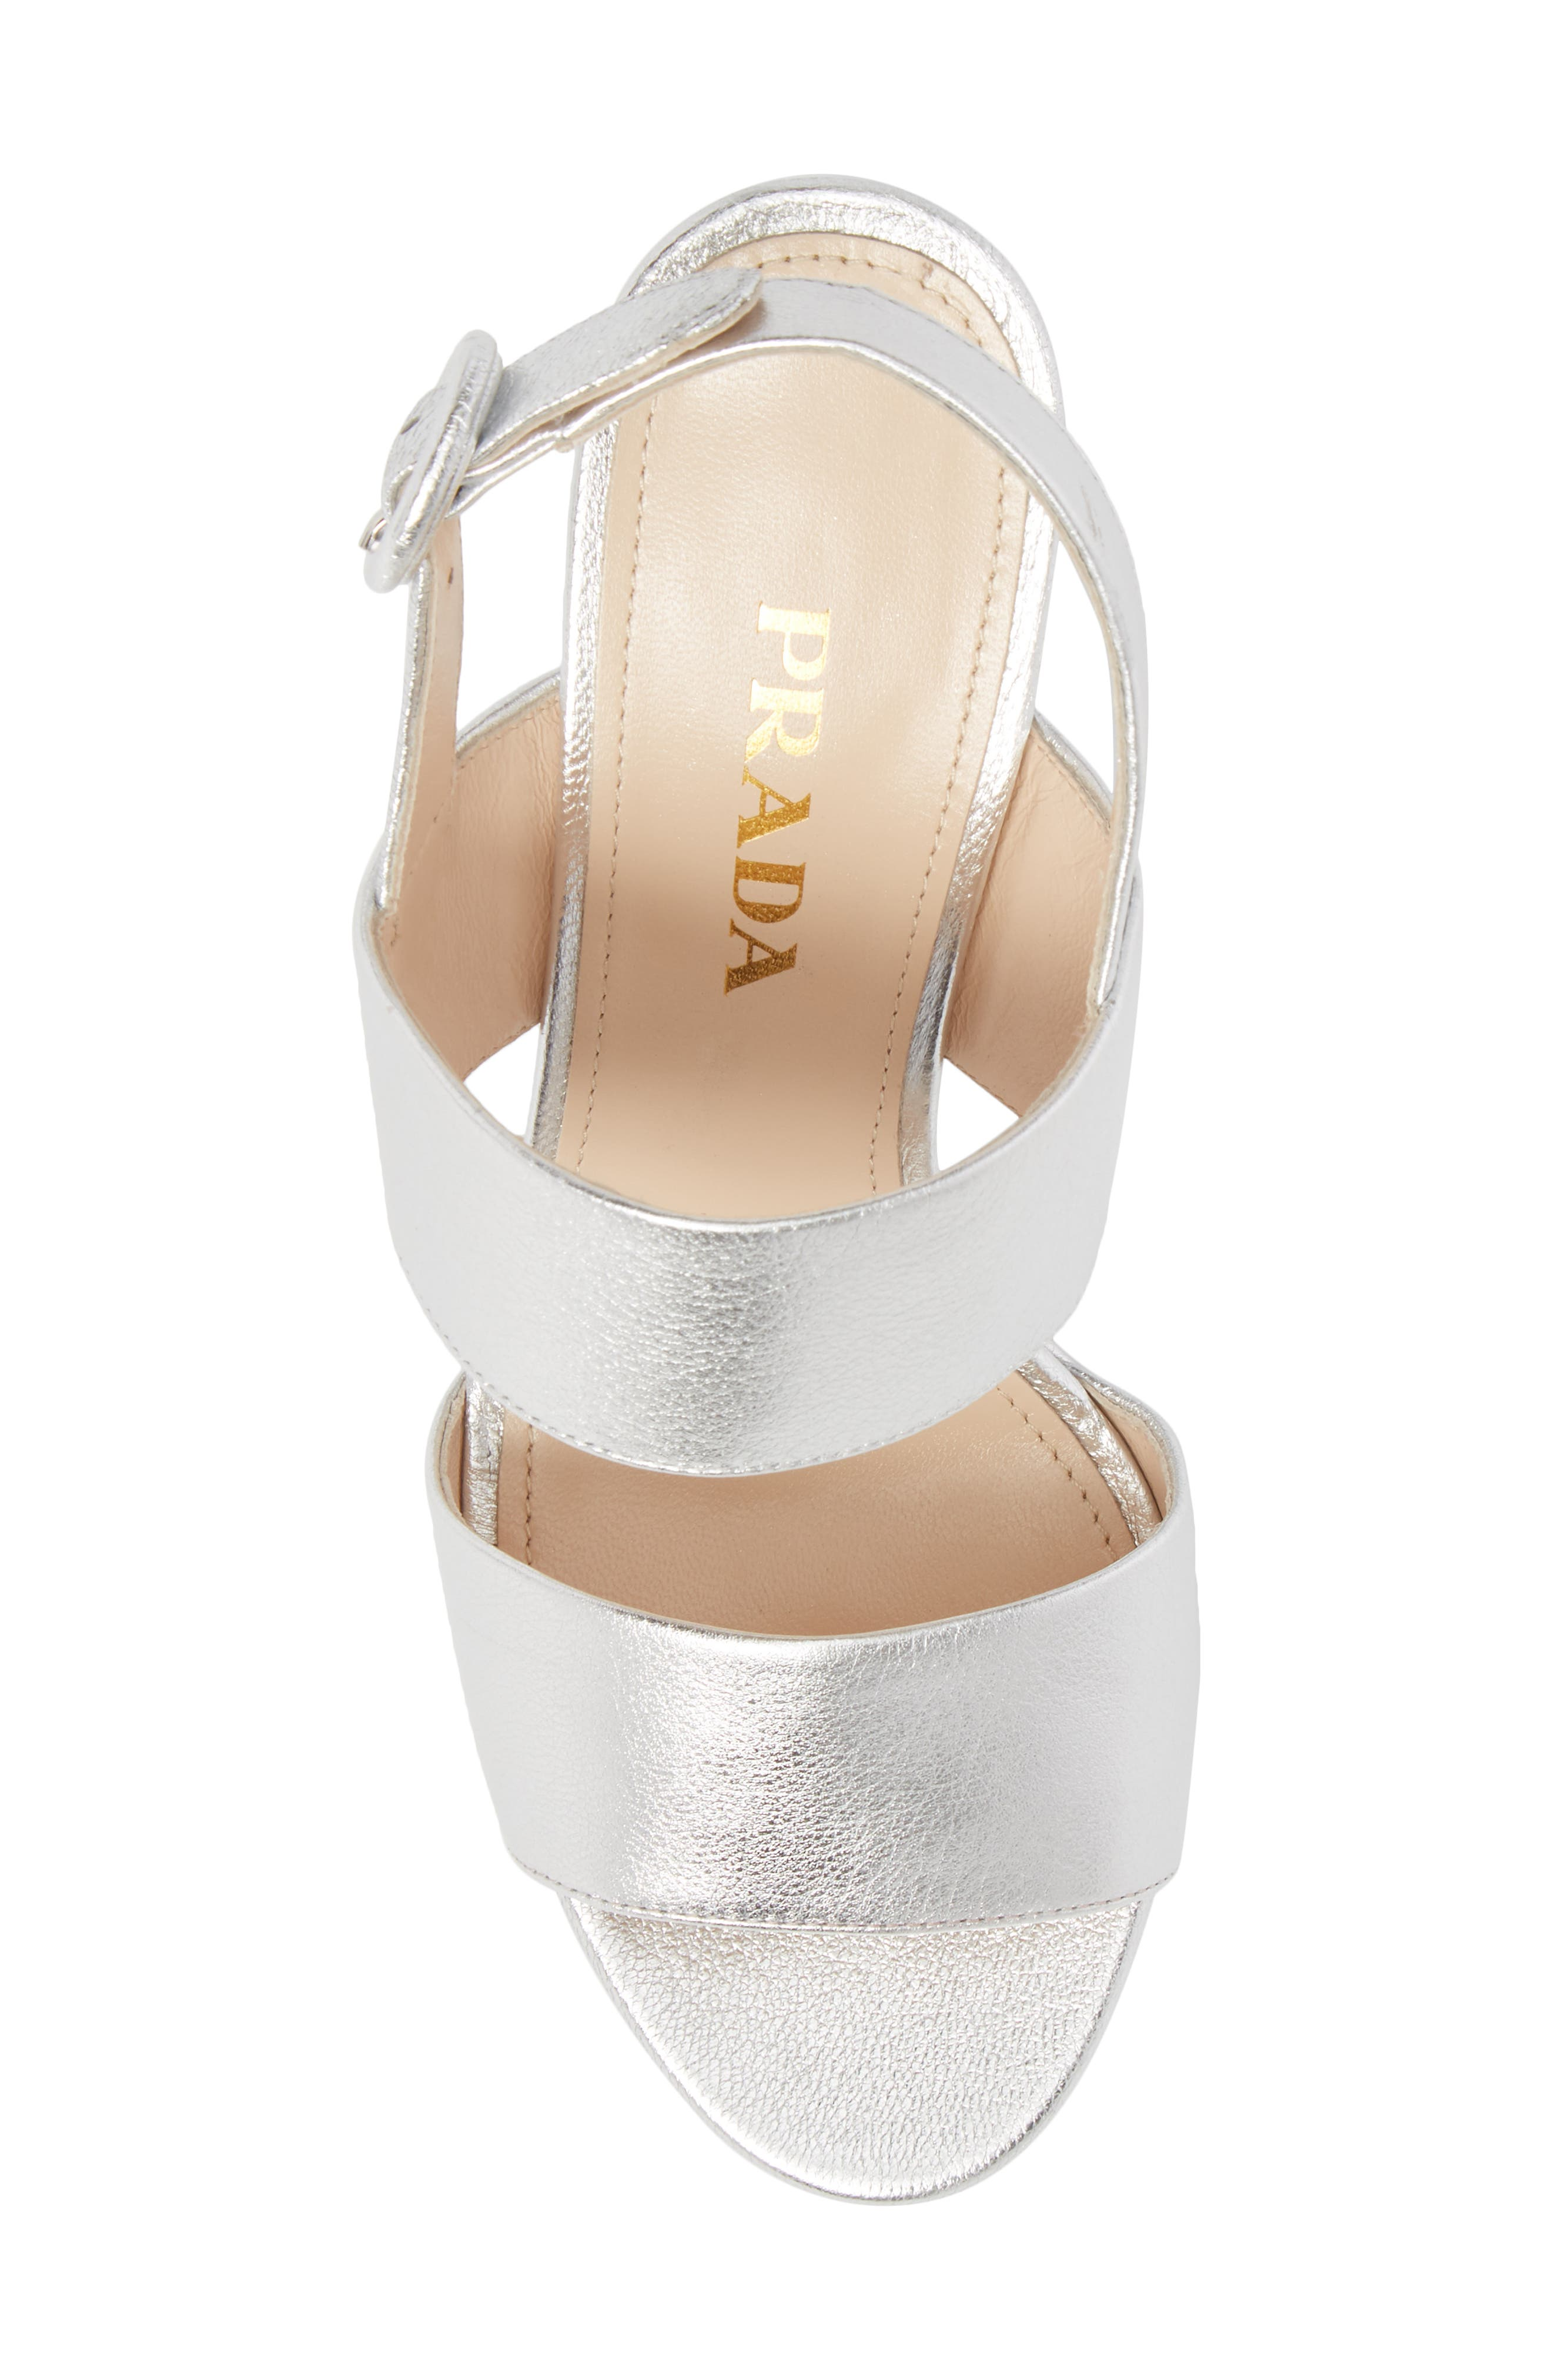 Double Band Platform Sandal,                             Alternate thumbnail 5, color,                             SILVER